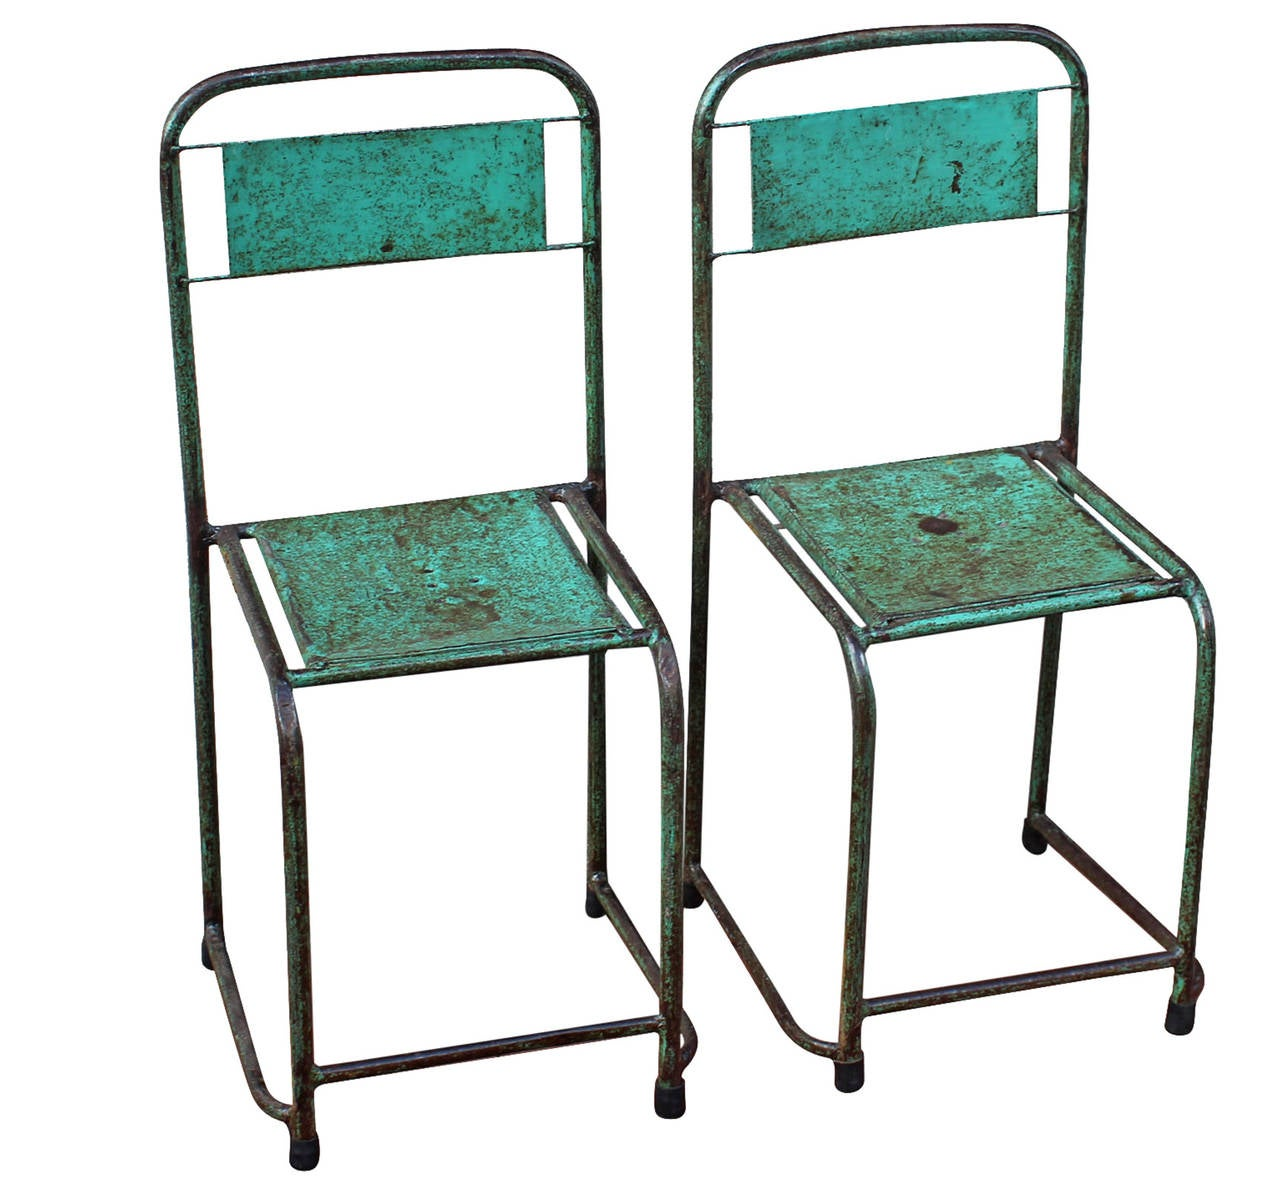 Pair Of Painted Metal Chairs At 1stdibs